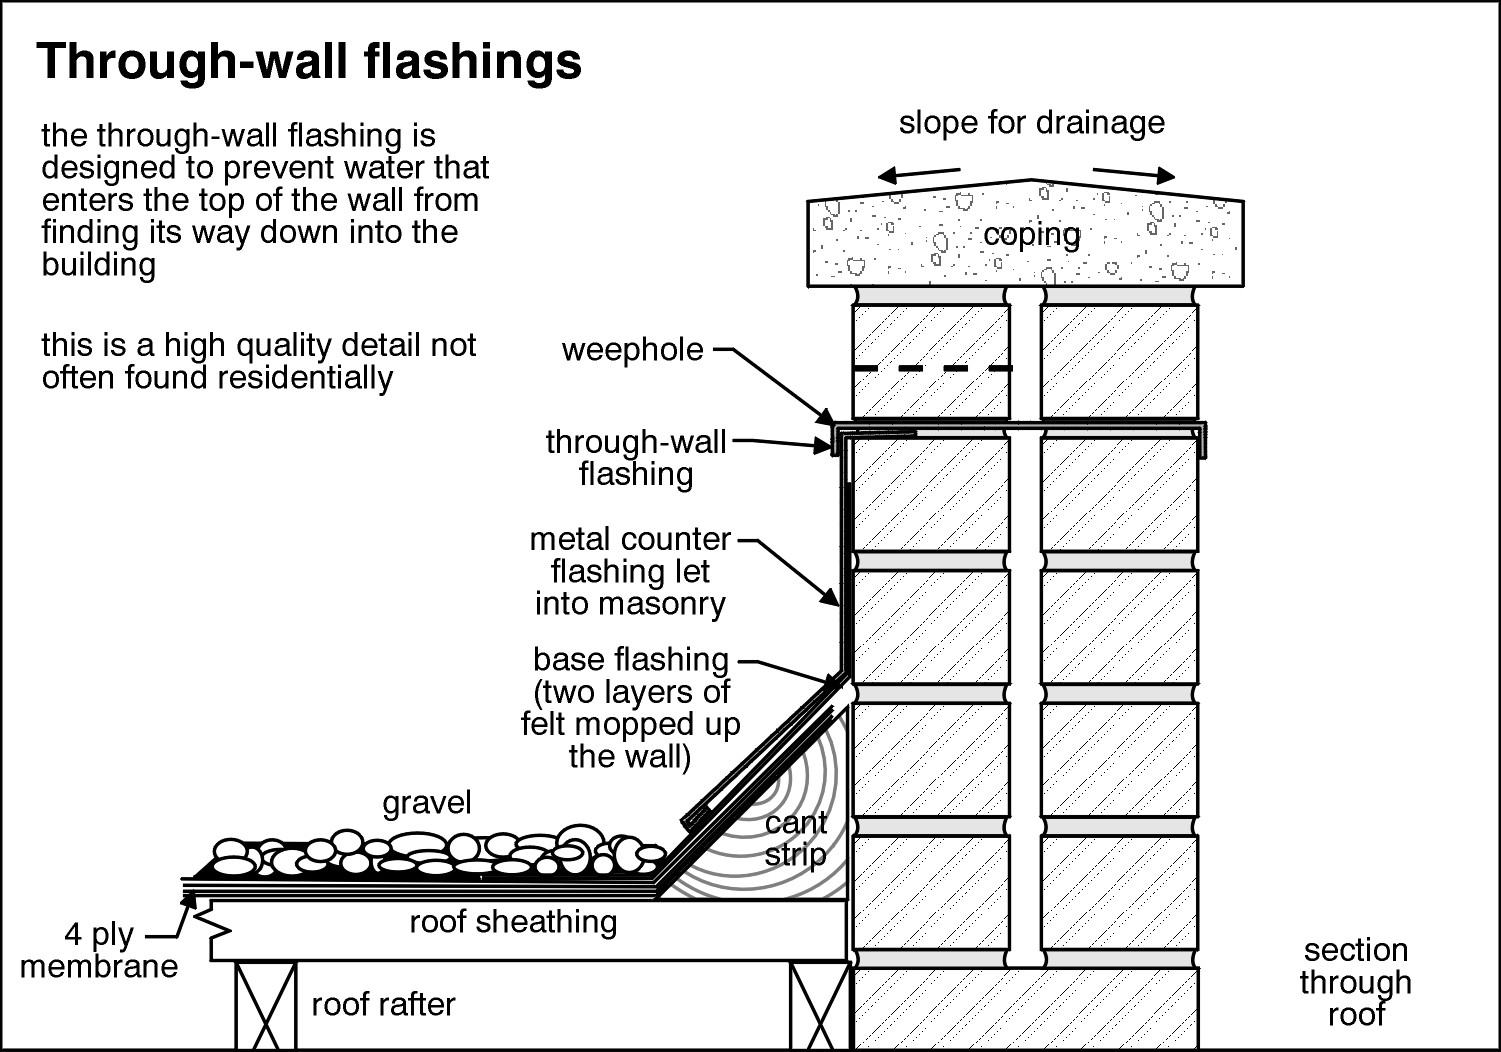 Parapet wall flashing.jpg